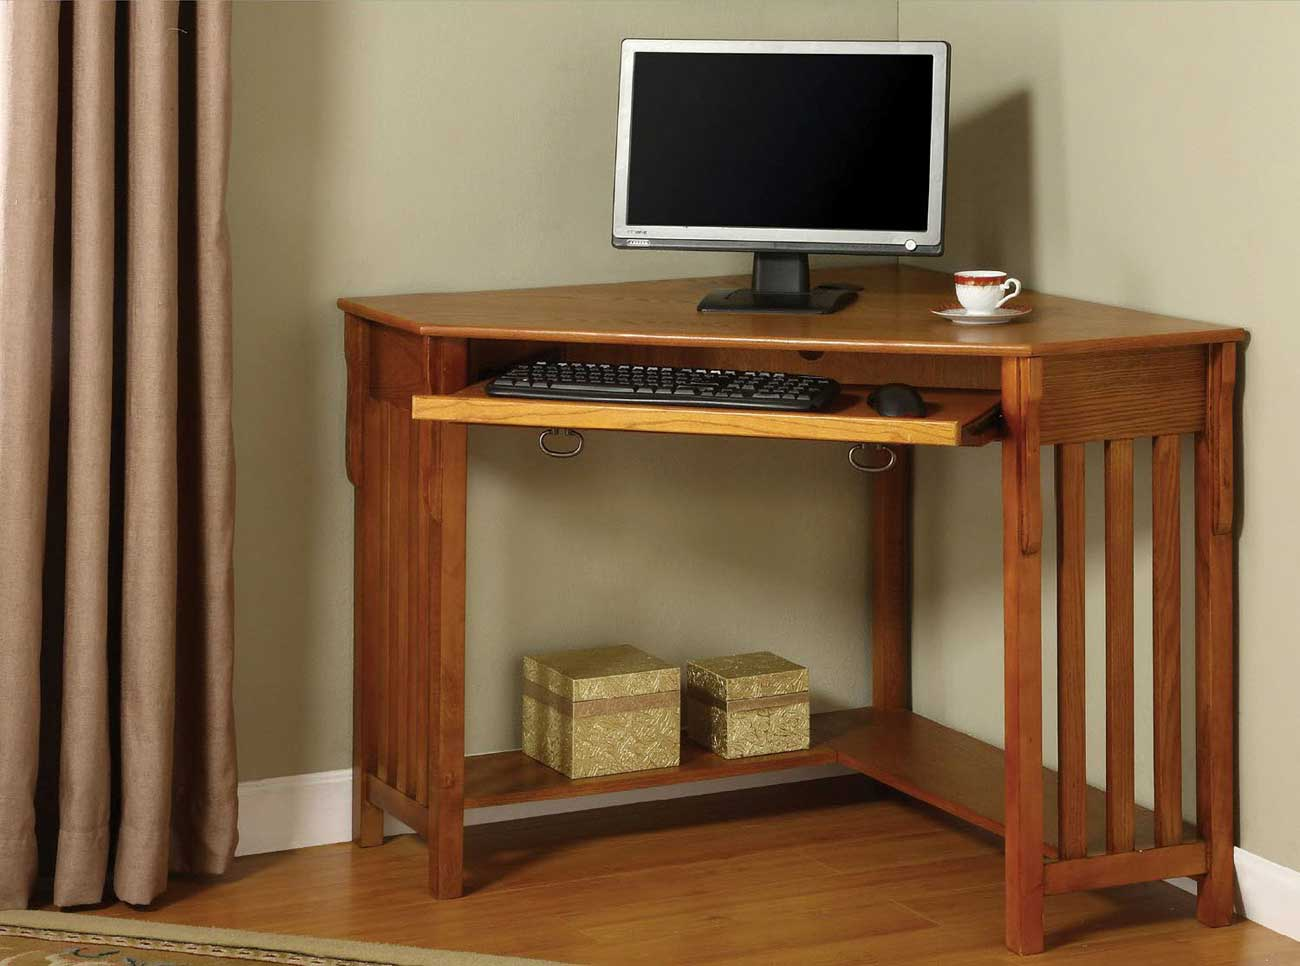 Toledo Corner Office Desk in Oak Finish